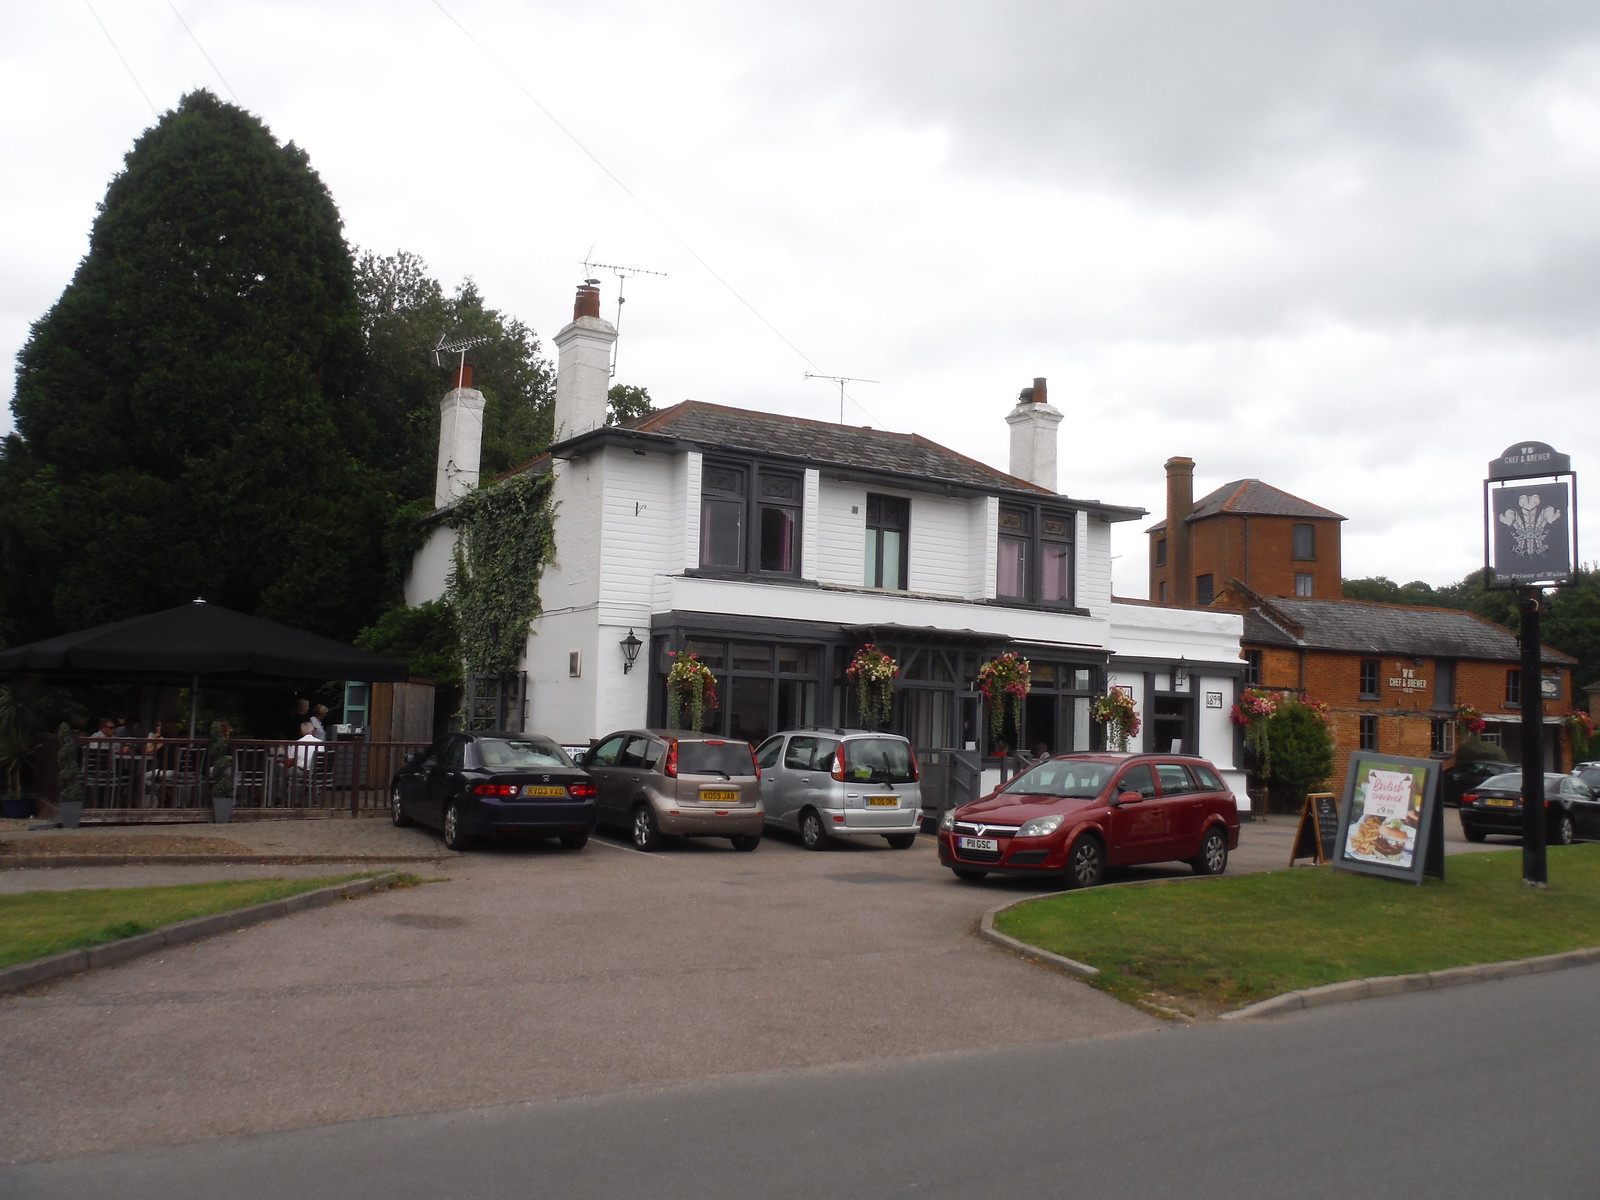 Prince of Wales, West End SWC Short Walk 17 - Oxshott Heath, Esher and West End Commons